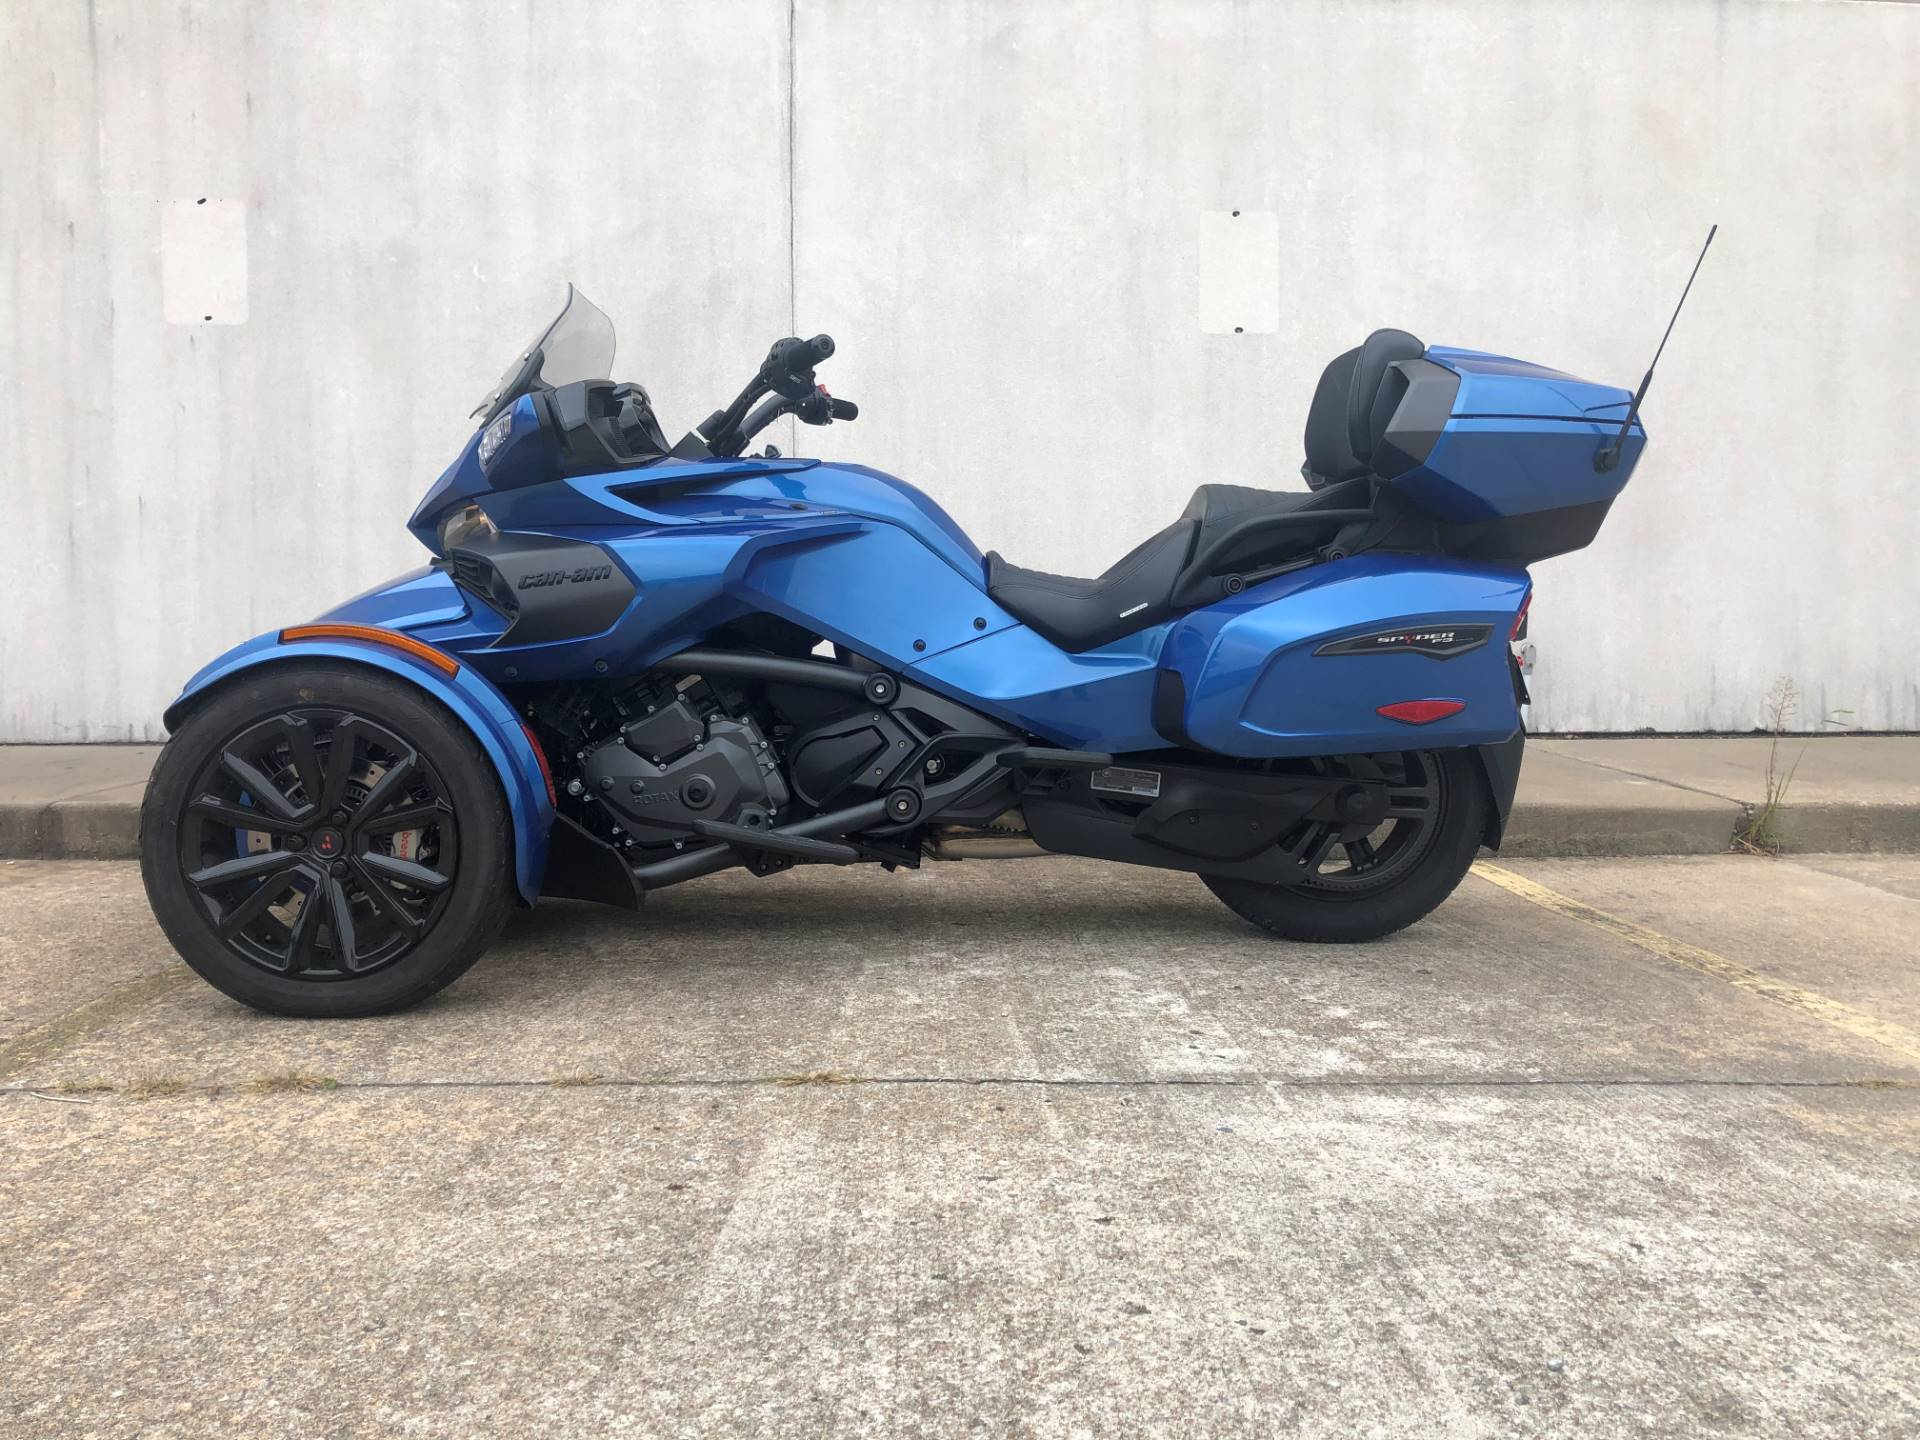 2018 Can-Am Spyder F3 Limited in Tulsa, Oklahoma - Photo 1